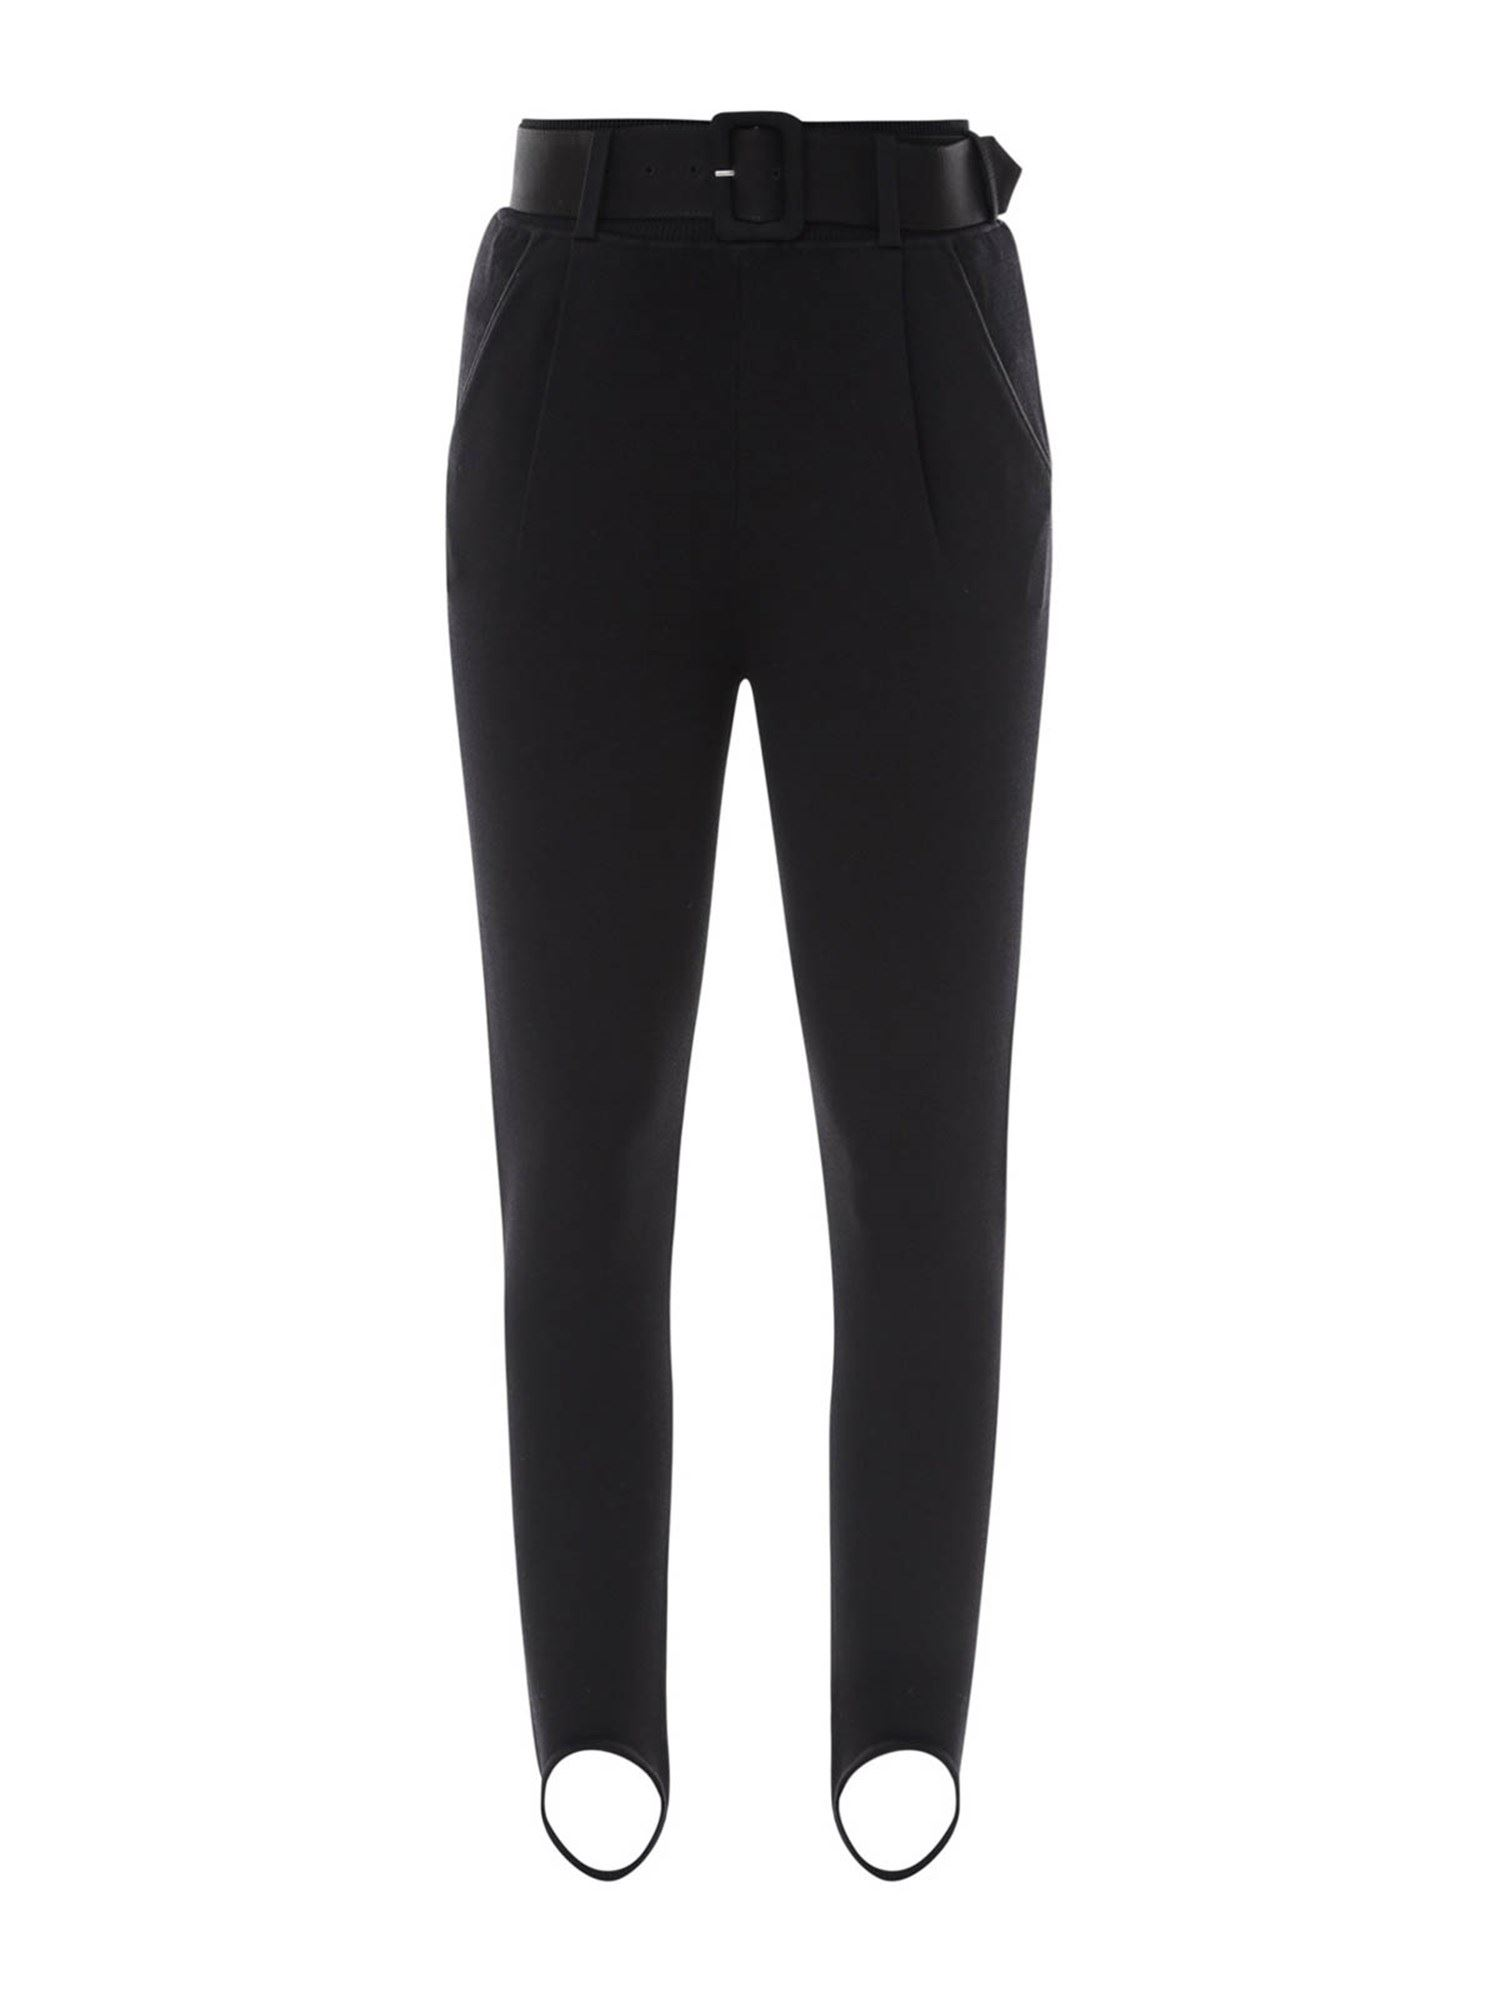 Self-Portrait KNITTED TROUSERS IN BLACK